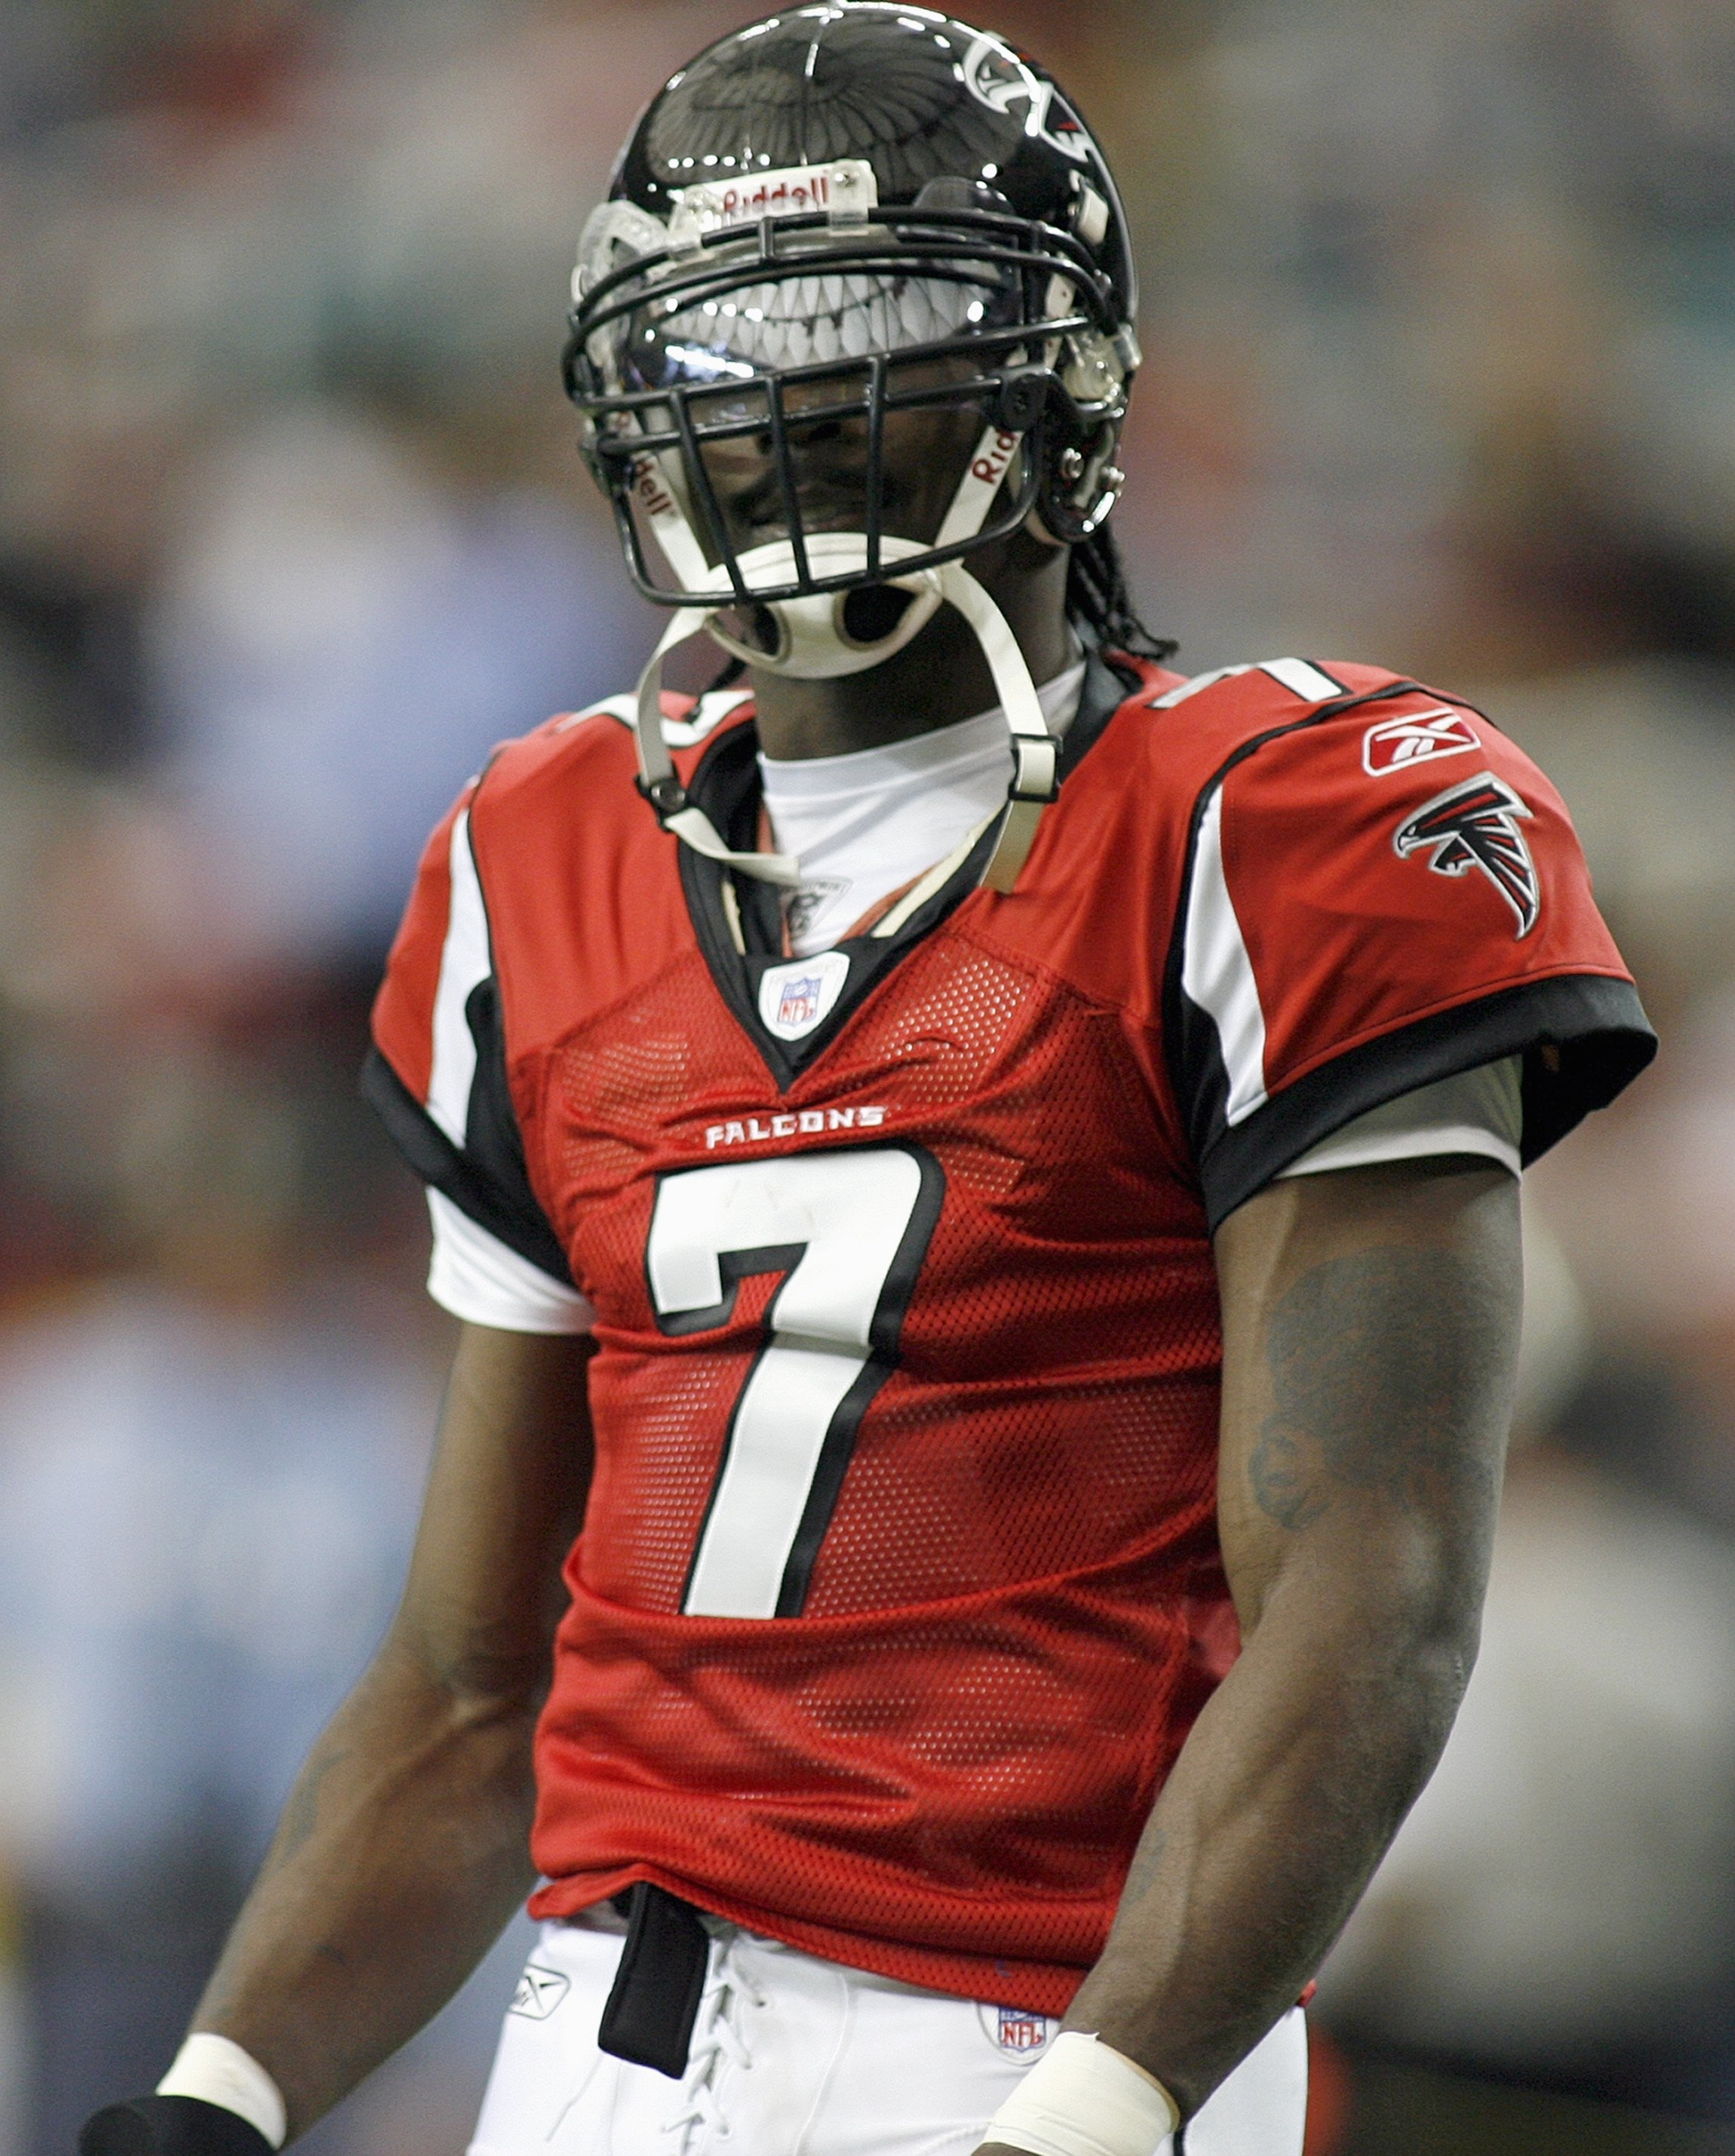 ATLANTA - DECEMBER 24: Quarterback Michael Vick #7 of the Atlanta Falcons looks on during the game against the Carolina Panthers on December 24, 2006 at The Georgia Dome in Atlanta,Georgia. (Photo by Marc Serota/Getty Images)